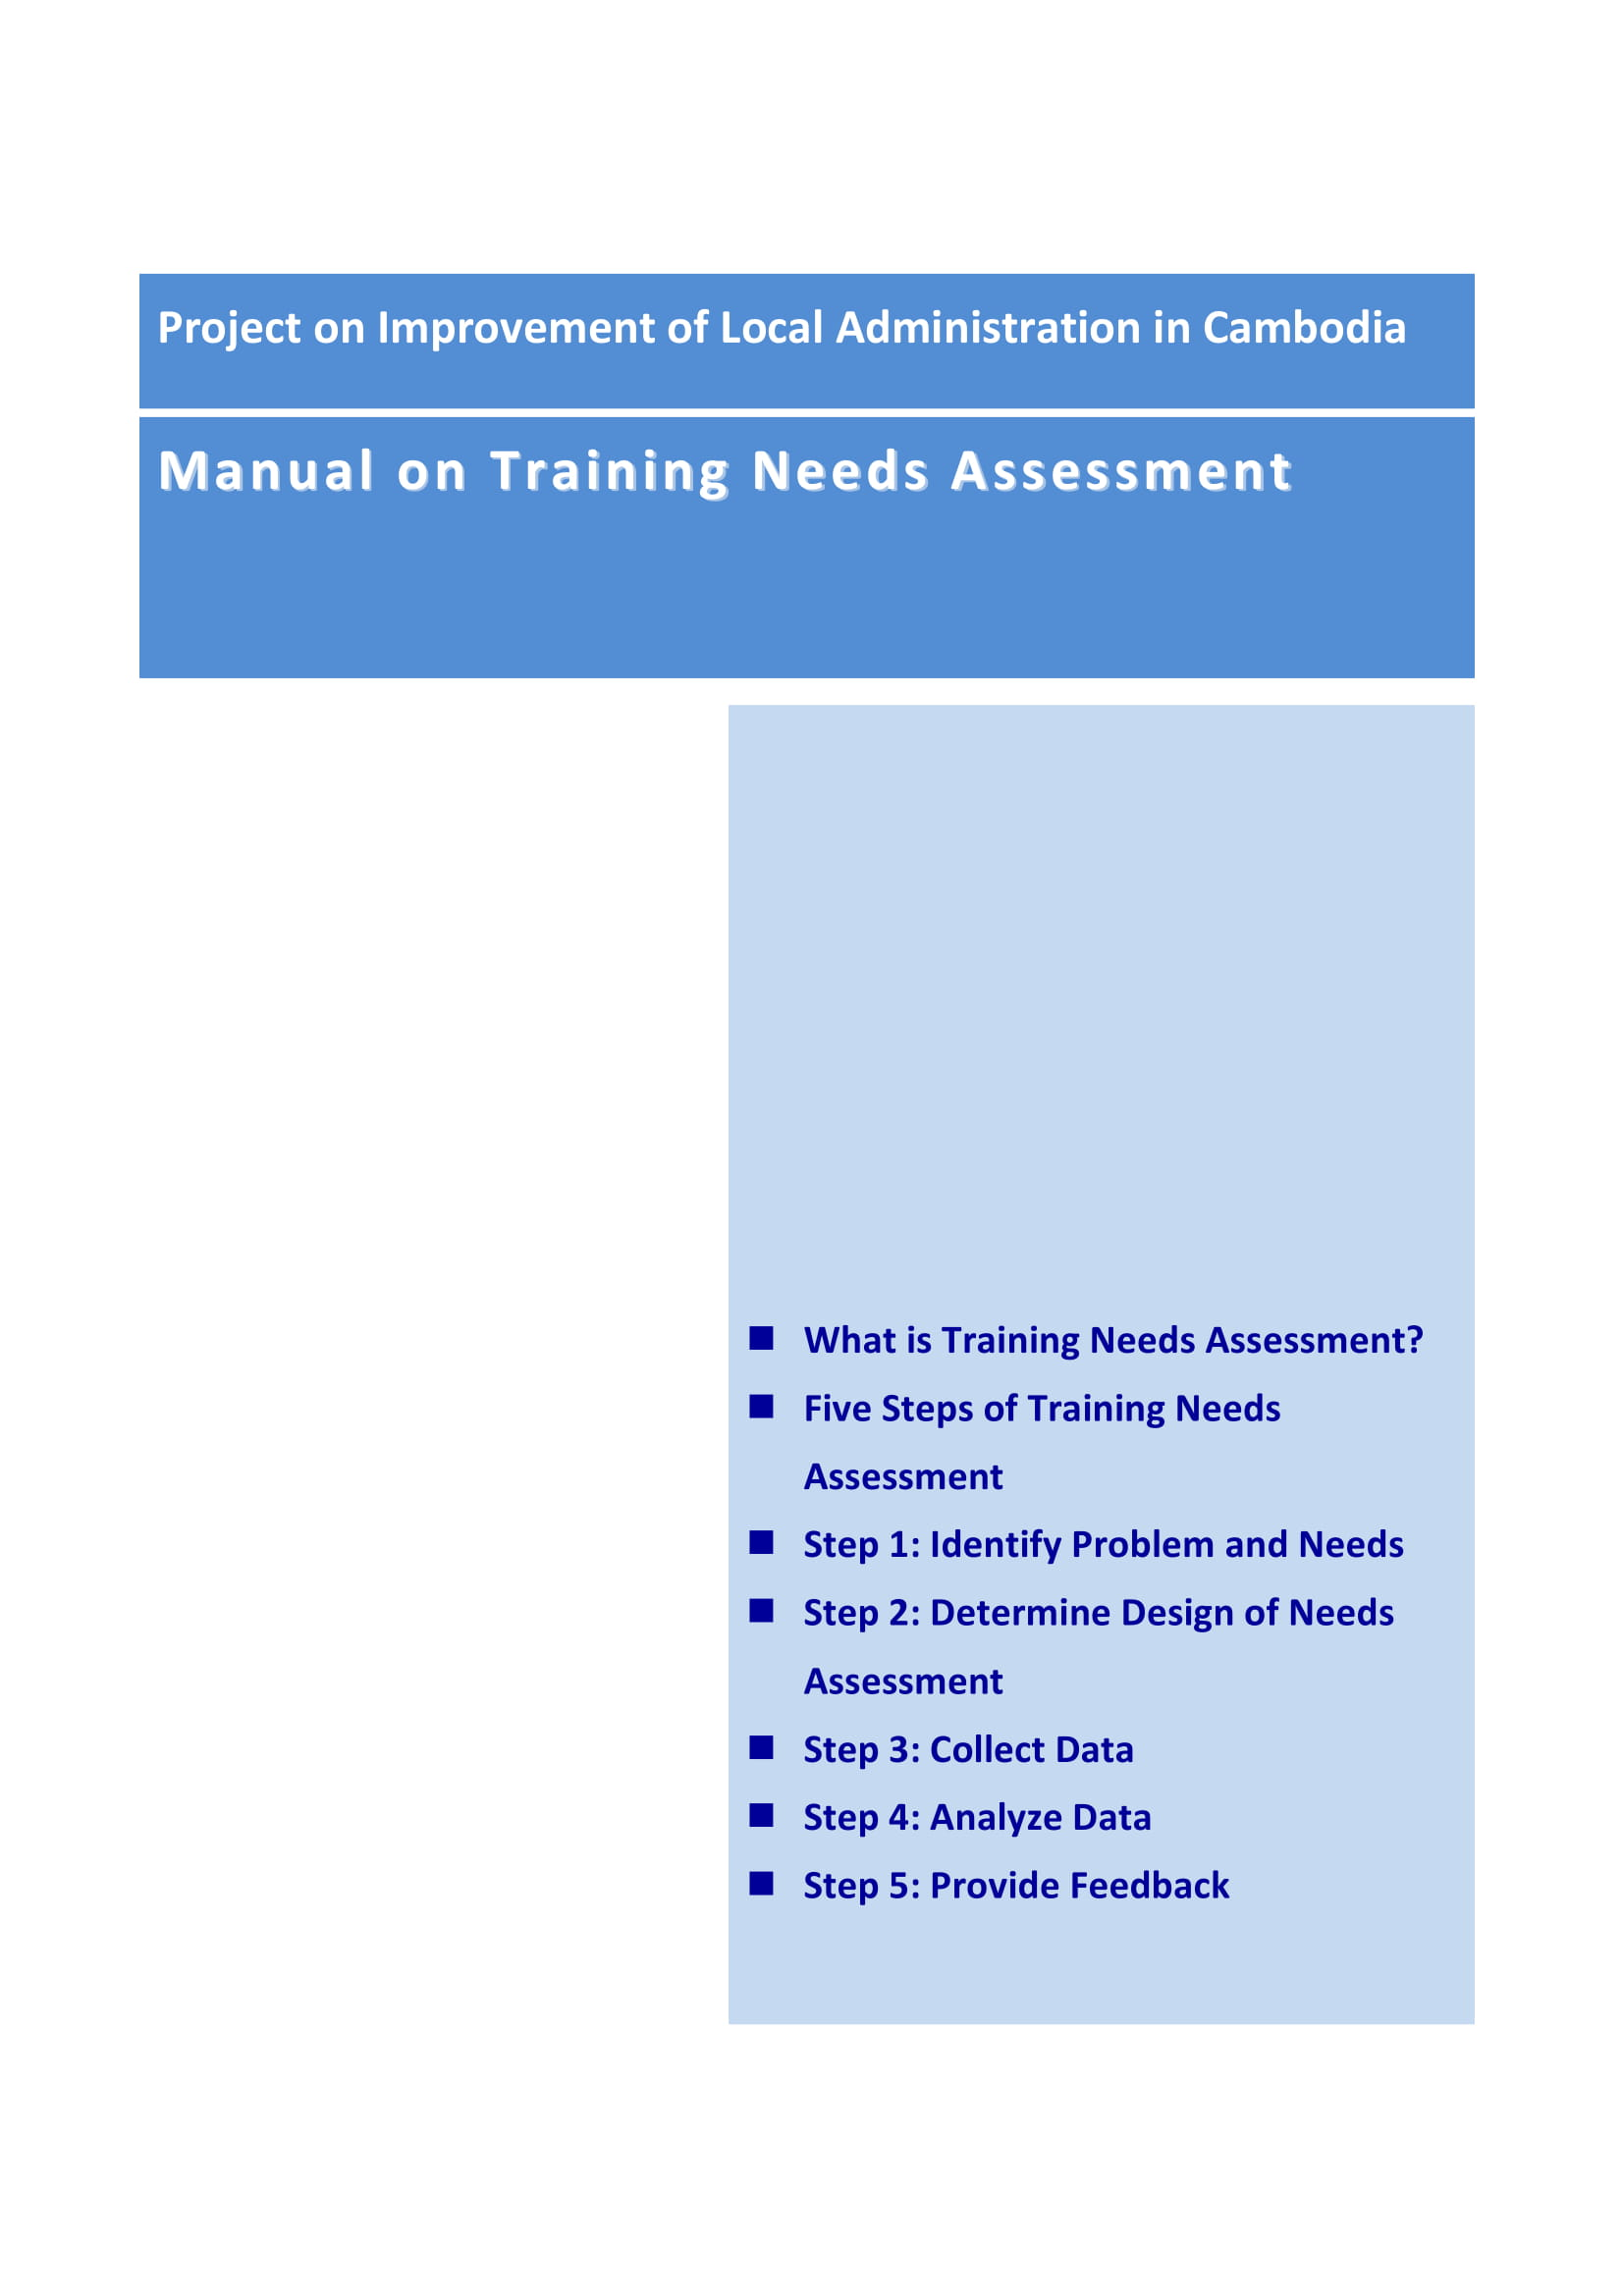 training needs assessment manual example 01